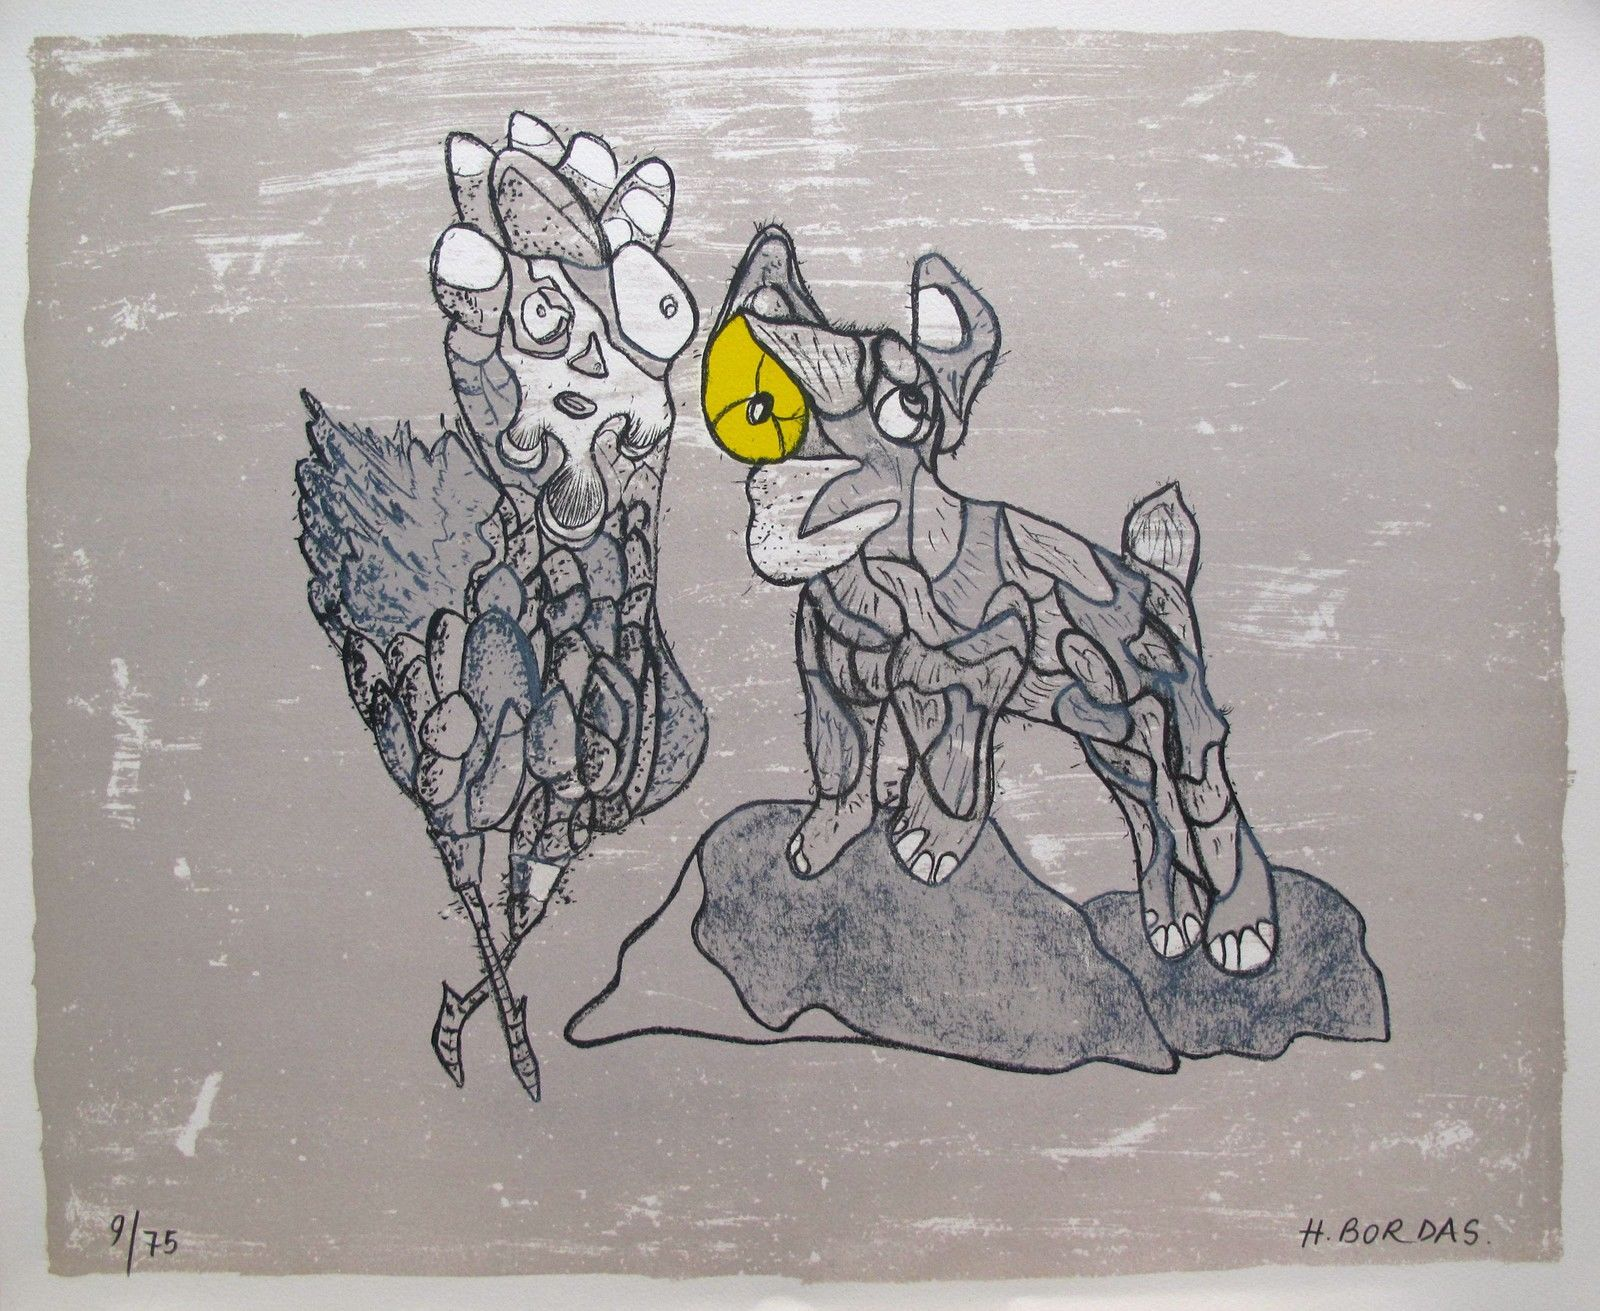 Herve Bordas HOMAGE TO PICASSO Hand Signed Limited Edition Lithograph